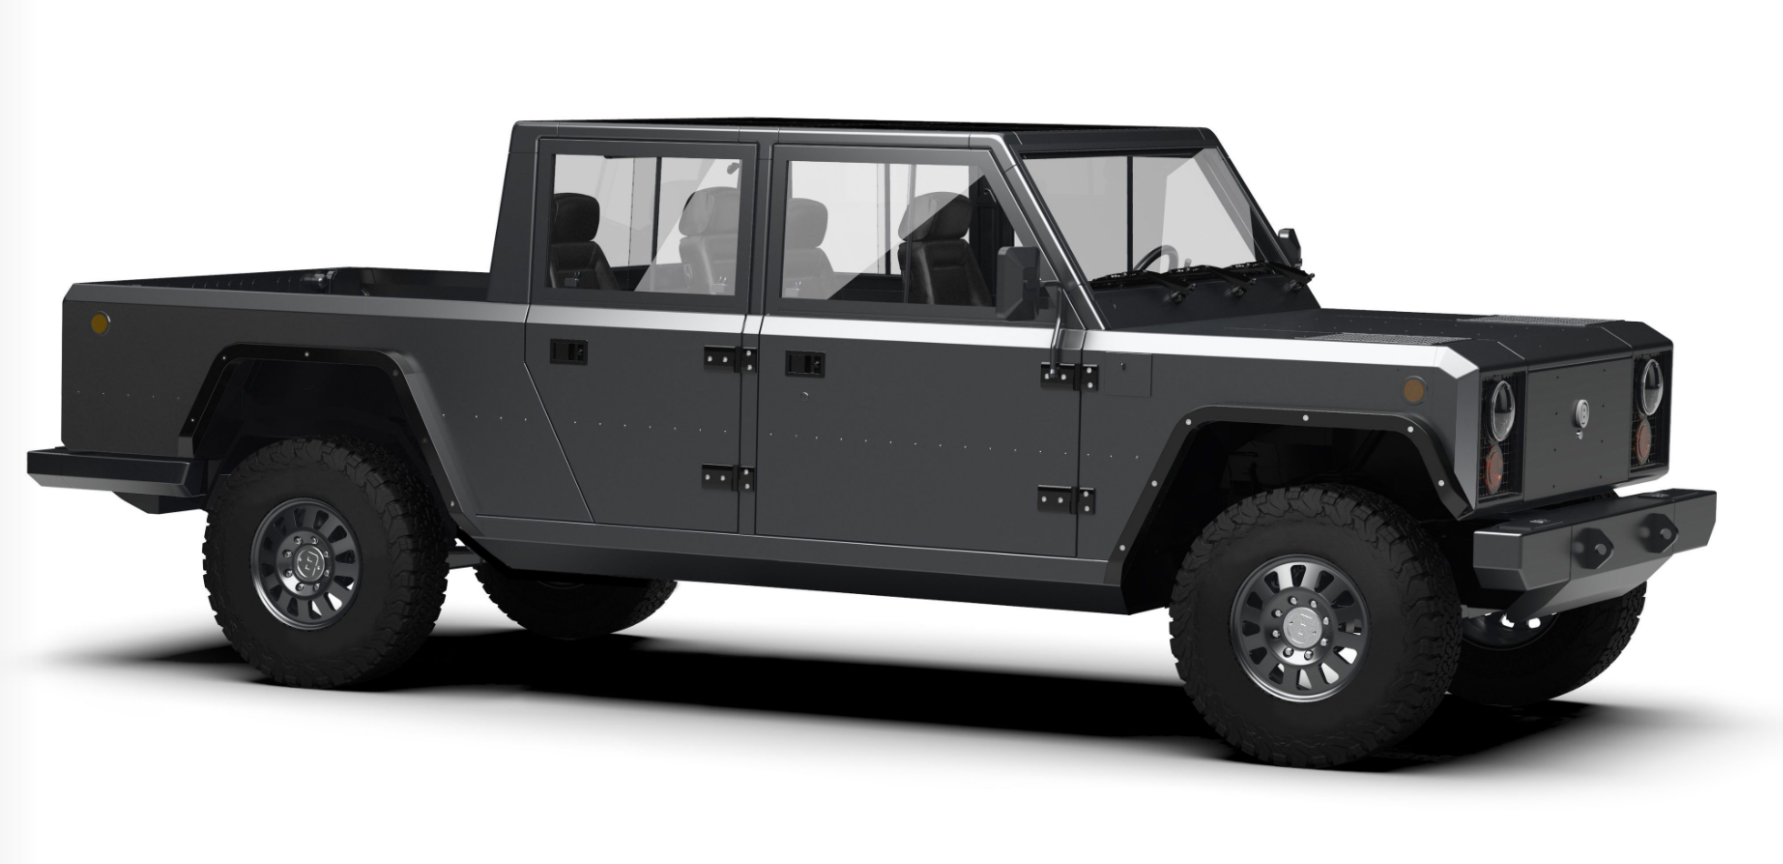 Following Its Electric Off Road Vehicle B1 The Us Company Bollinger Motors Now Presents B2 A Fully Pickup Truck With An Open Loading Area